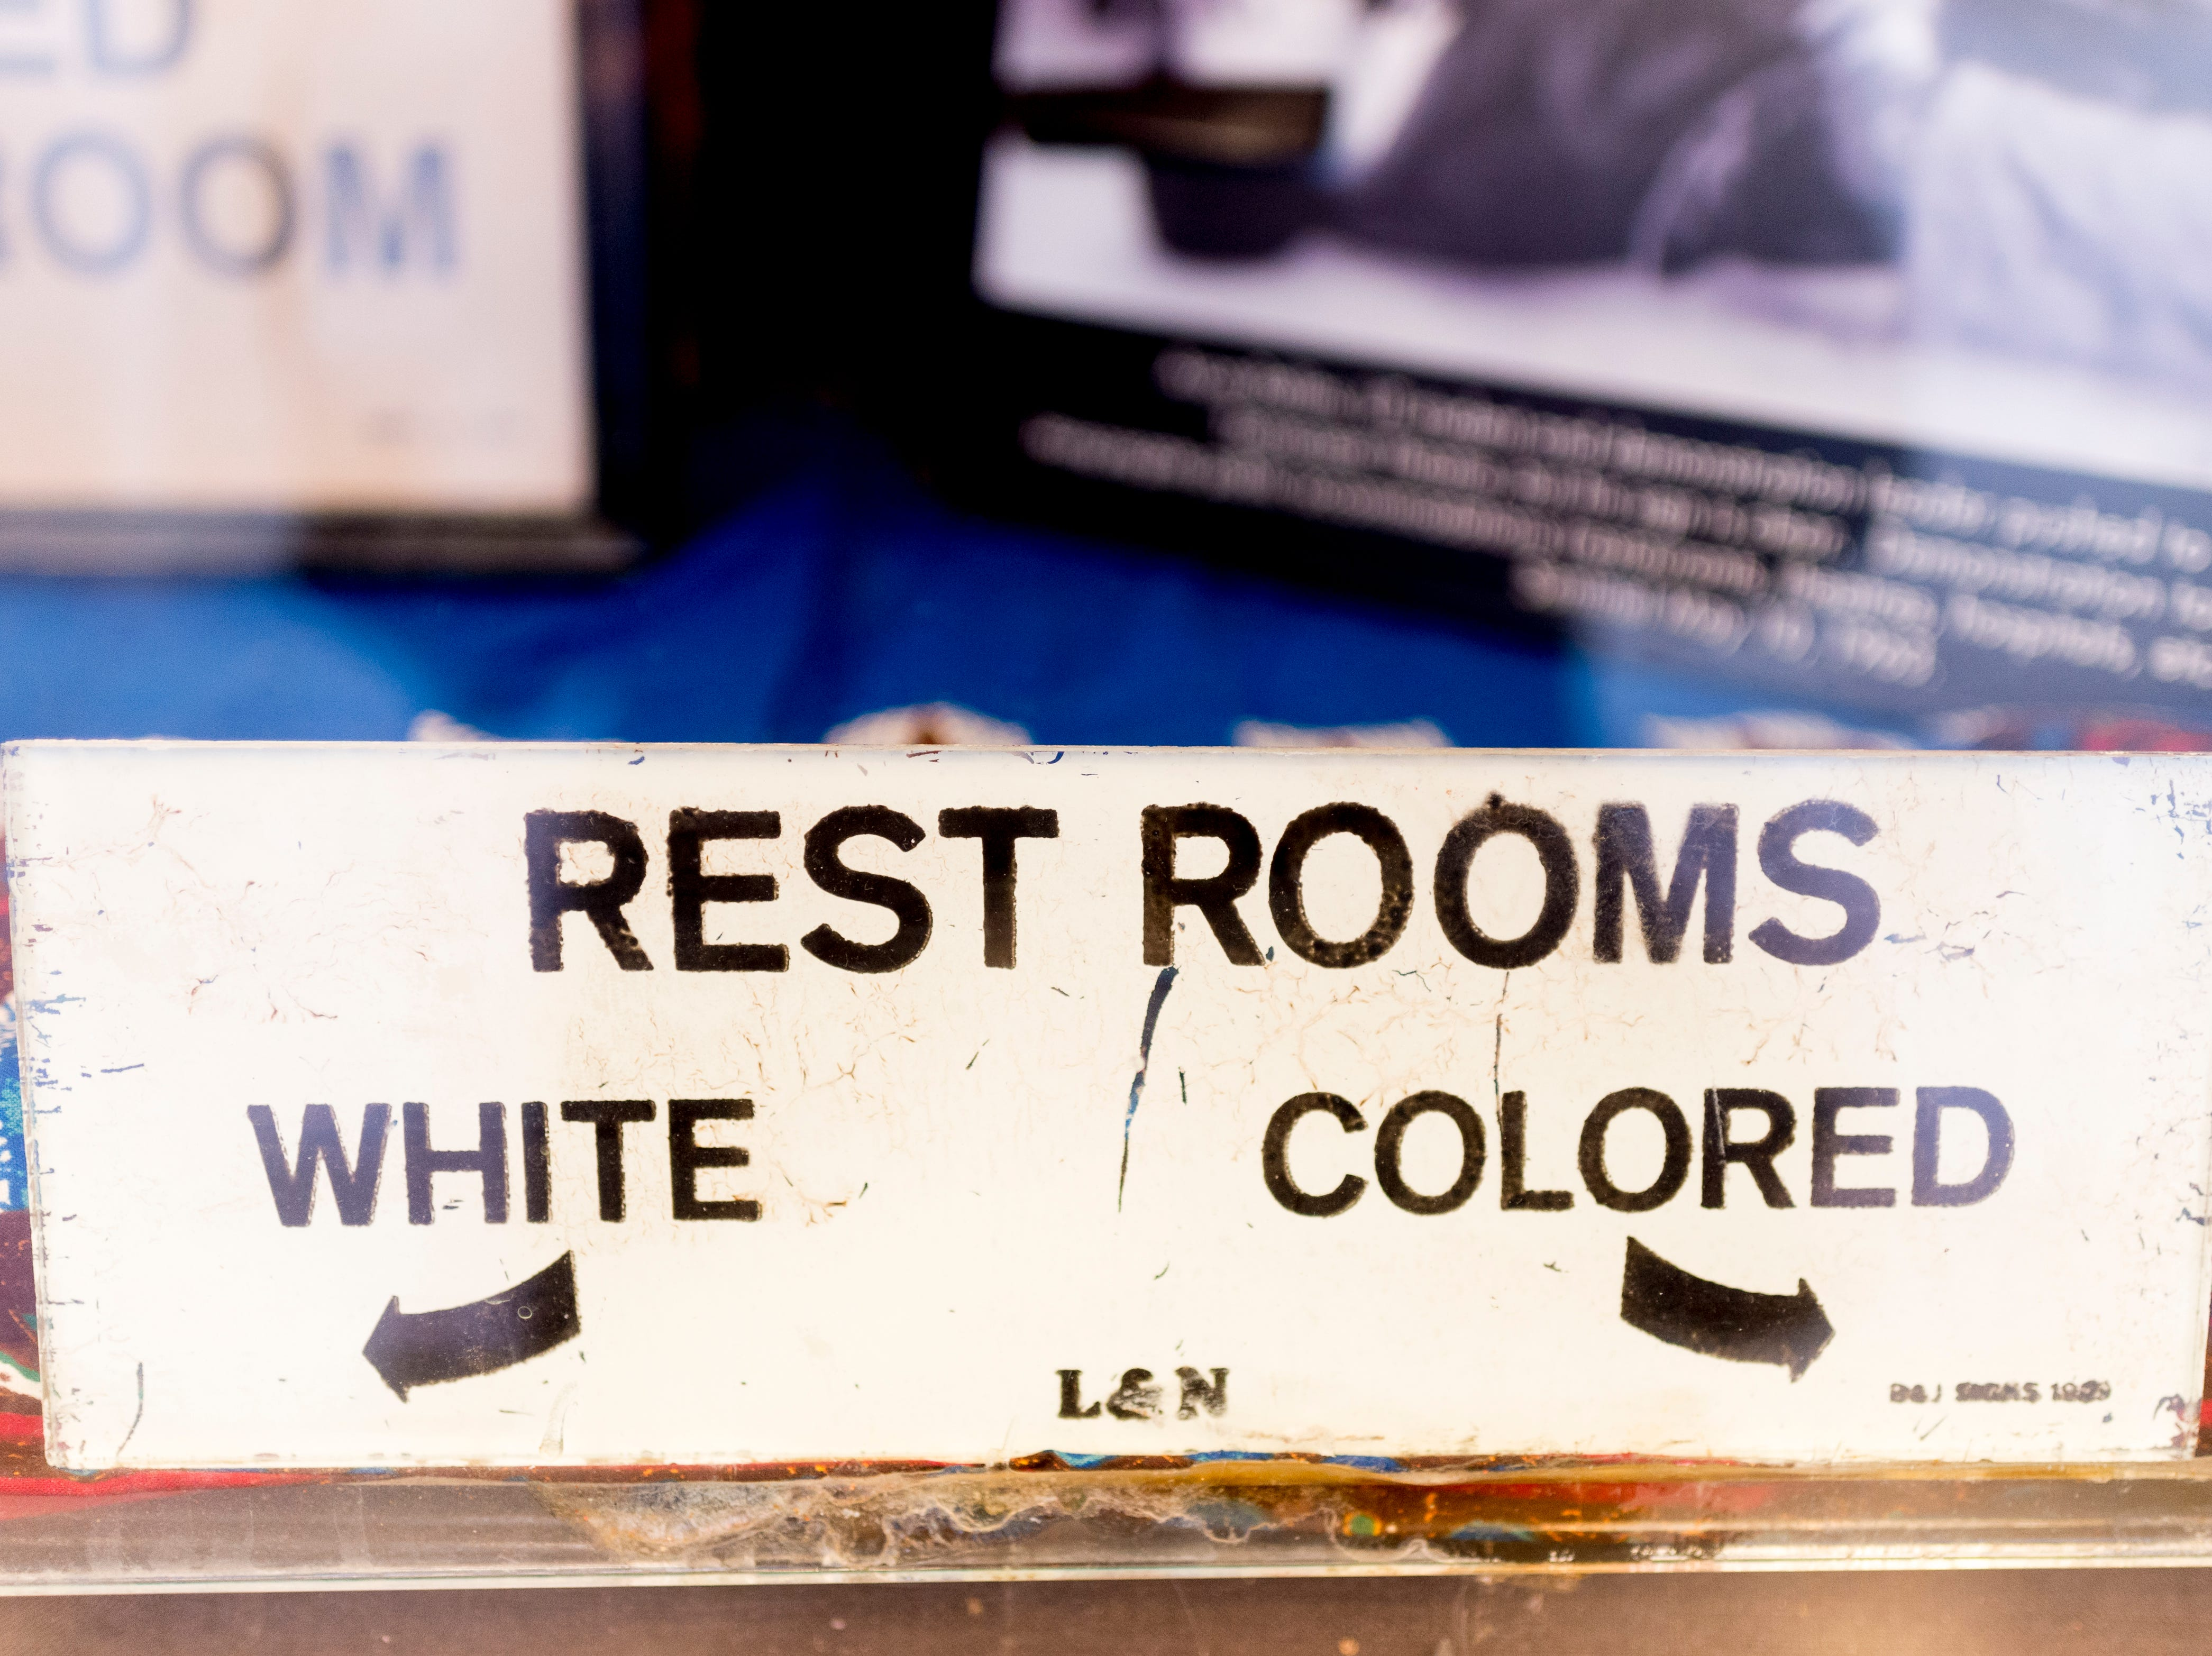 """A restroom sign from an L&N Railroad building at the Beck Cultural Center's """"Eighth of August"""" commemoration at the Tennessee Theatre in Knoxville, Tennessee on Wednesday, August 8, 2018. Filmmaker Loki Mulholland and civil rights icon Joan Trumpauer Mulholland were special guests at the debut screening of Black, White & U.S."""